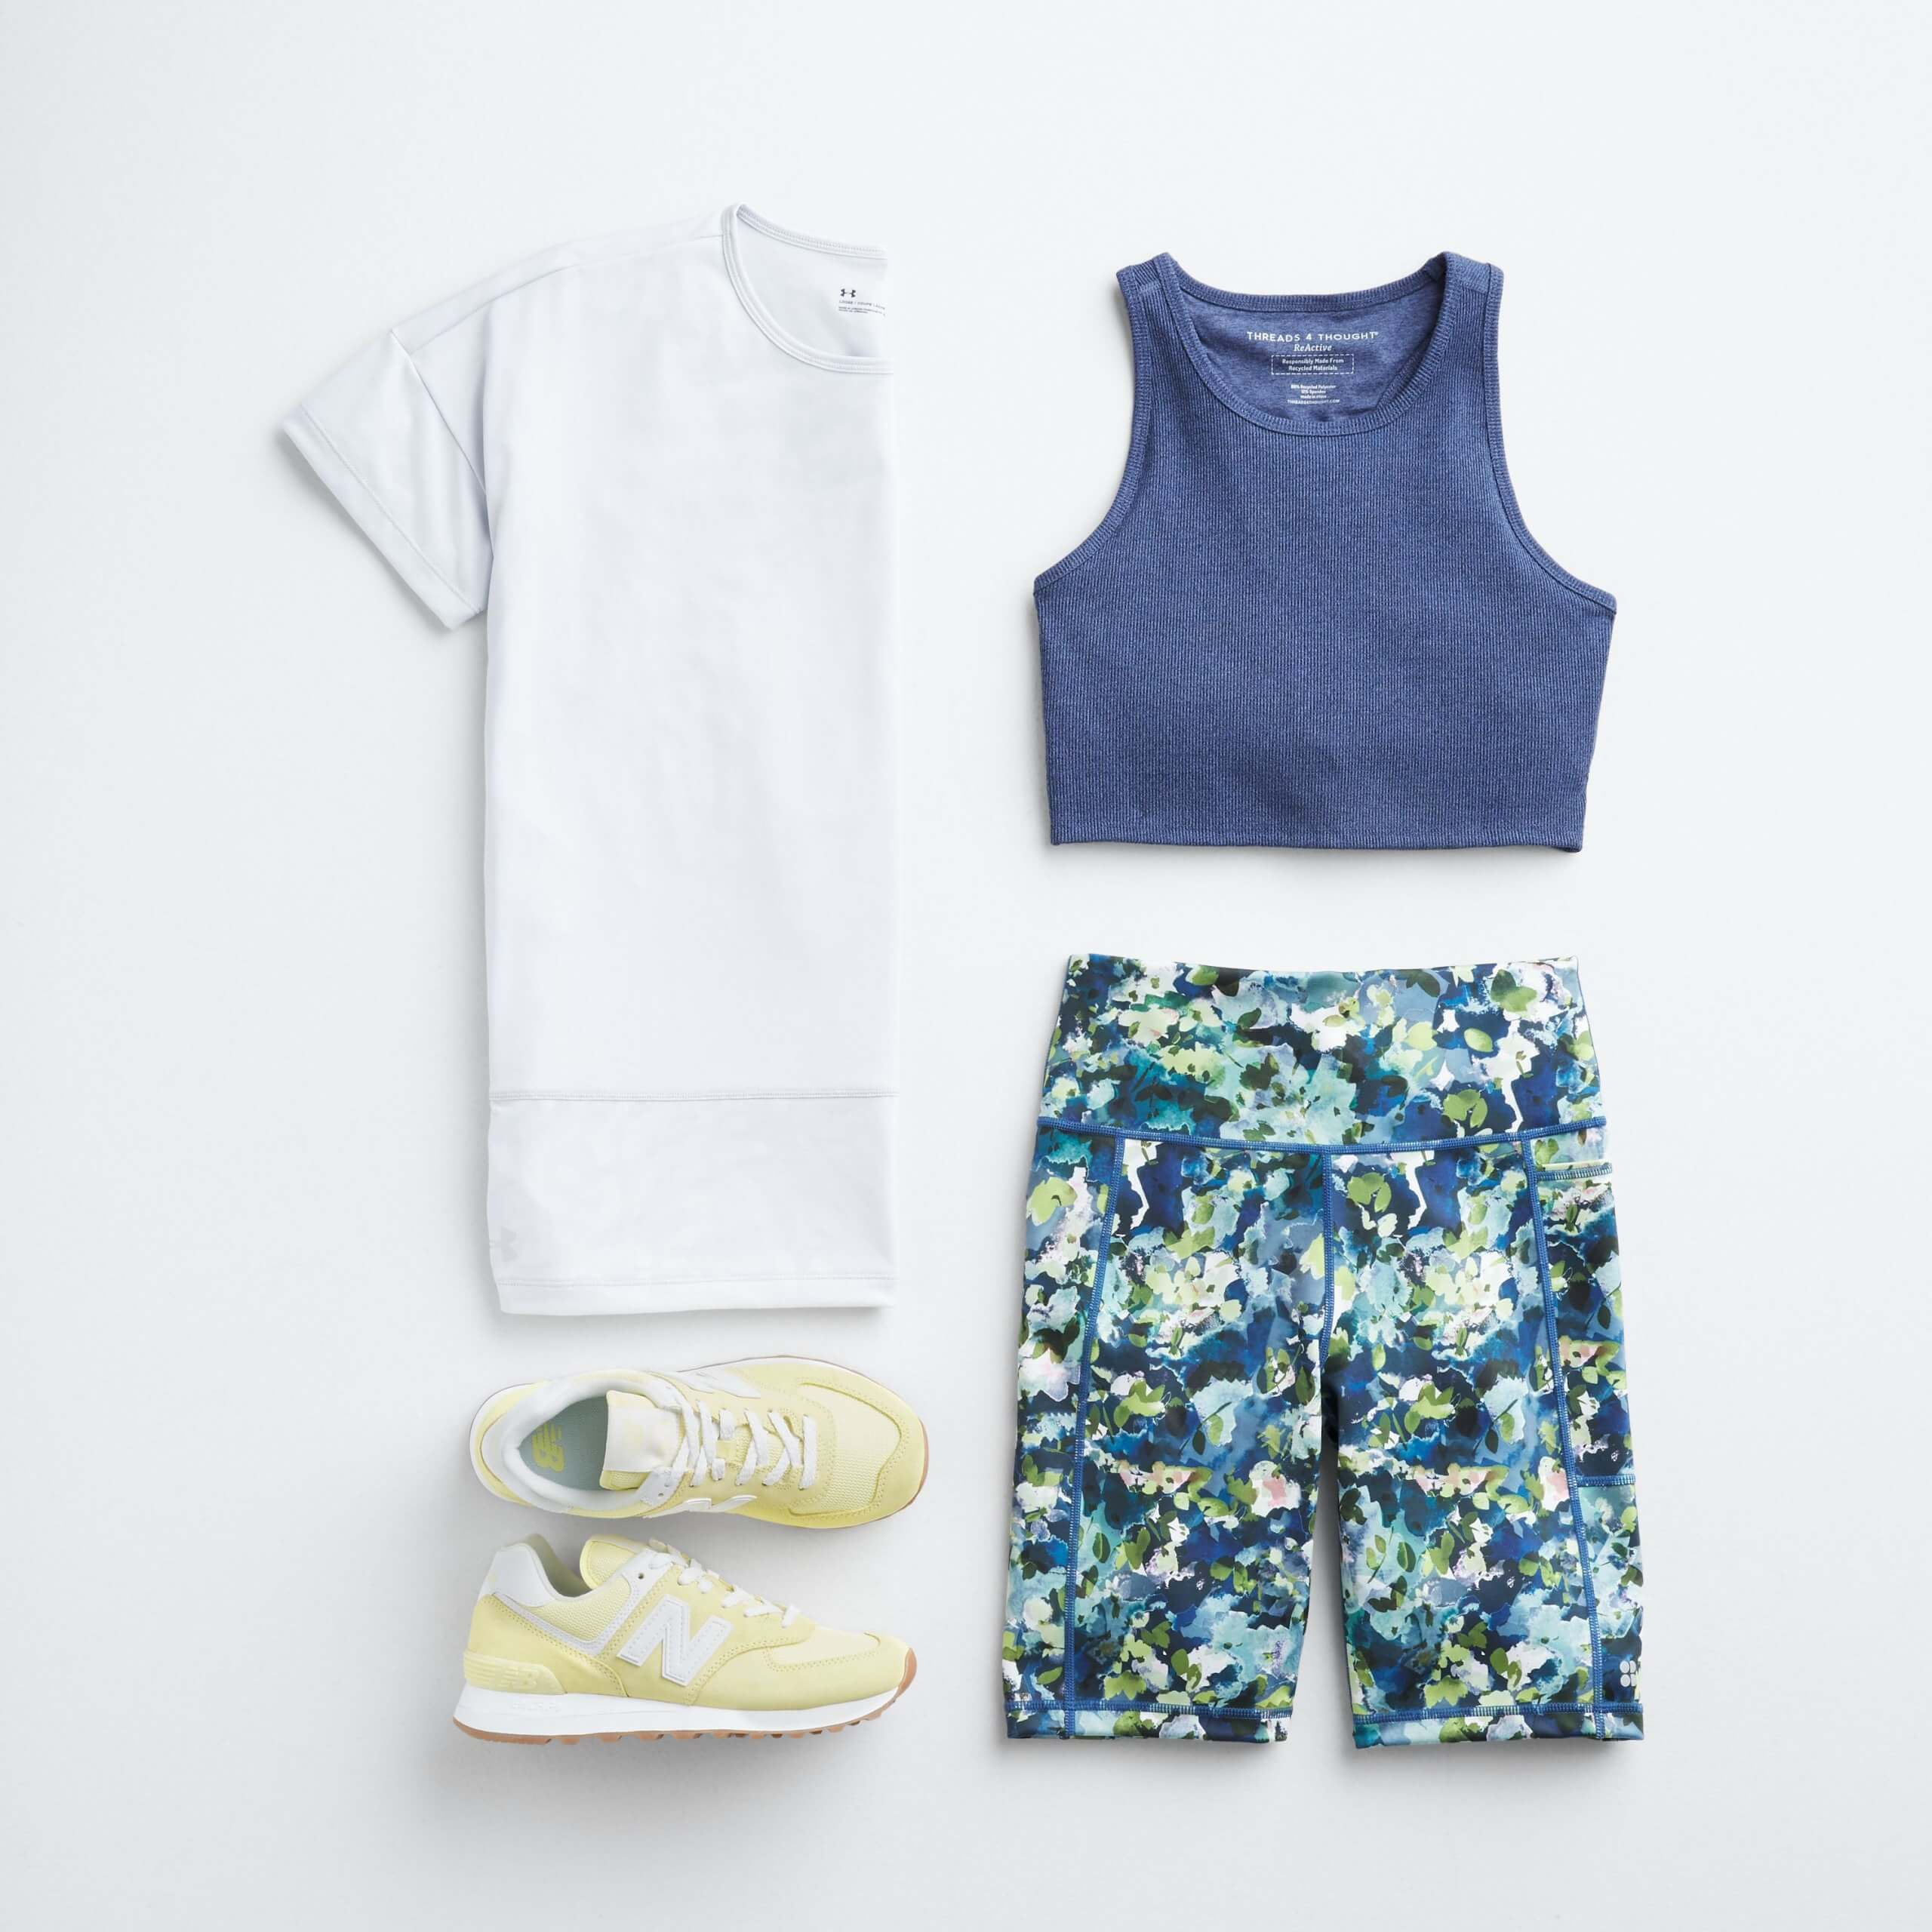 Stitch Fix Women's outfit laydown featuring white performance tee, blue sports bra, blue white and green splatter-print yoga shorts and yellow sneakers.